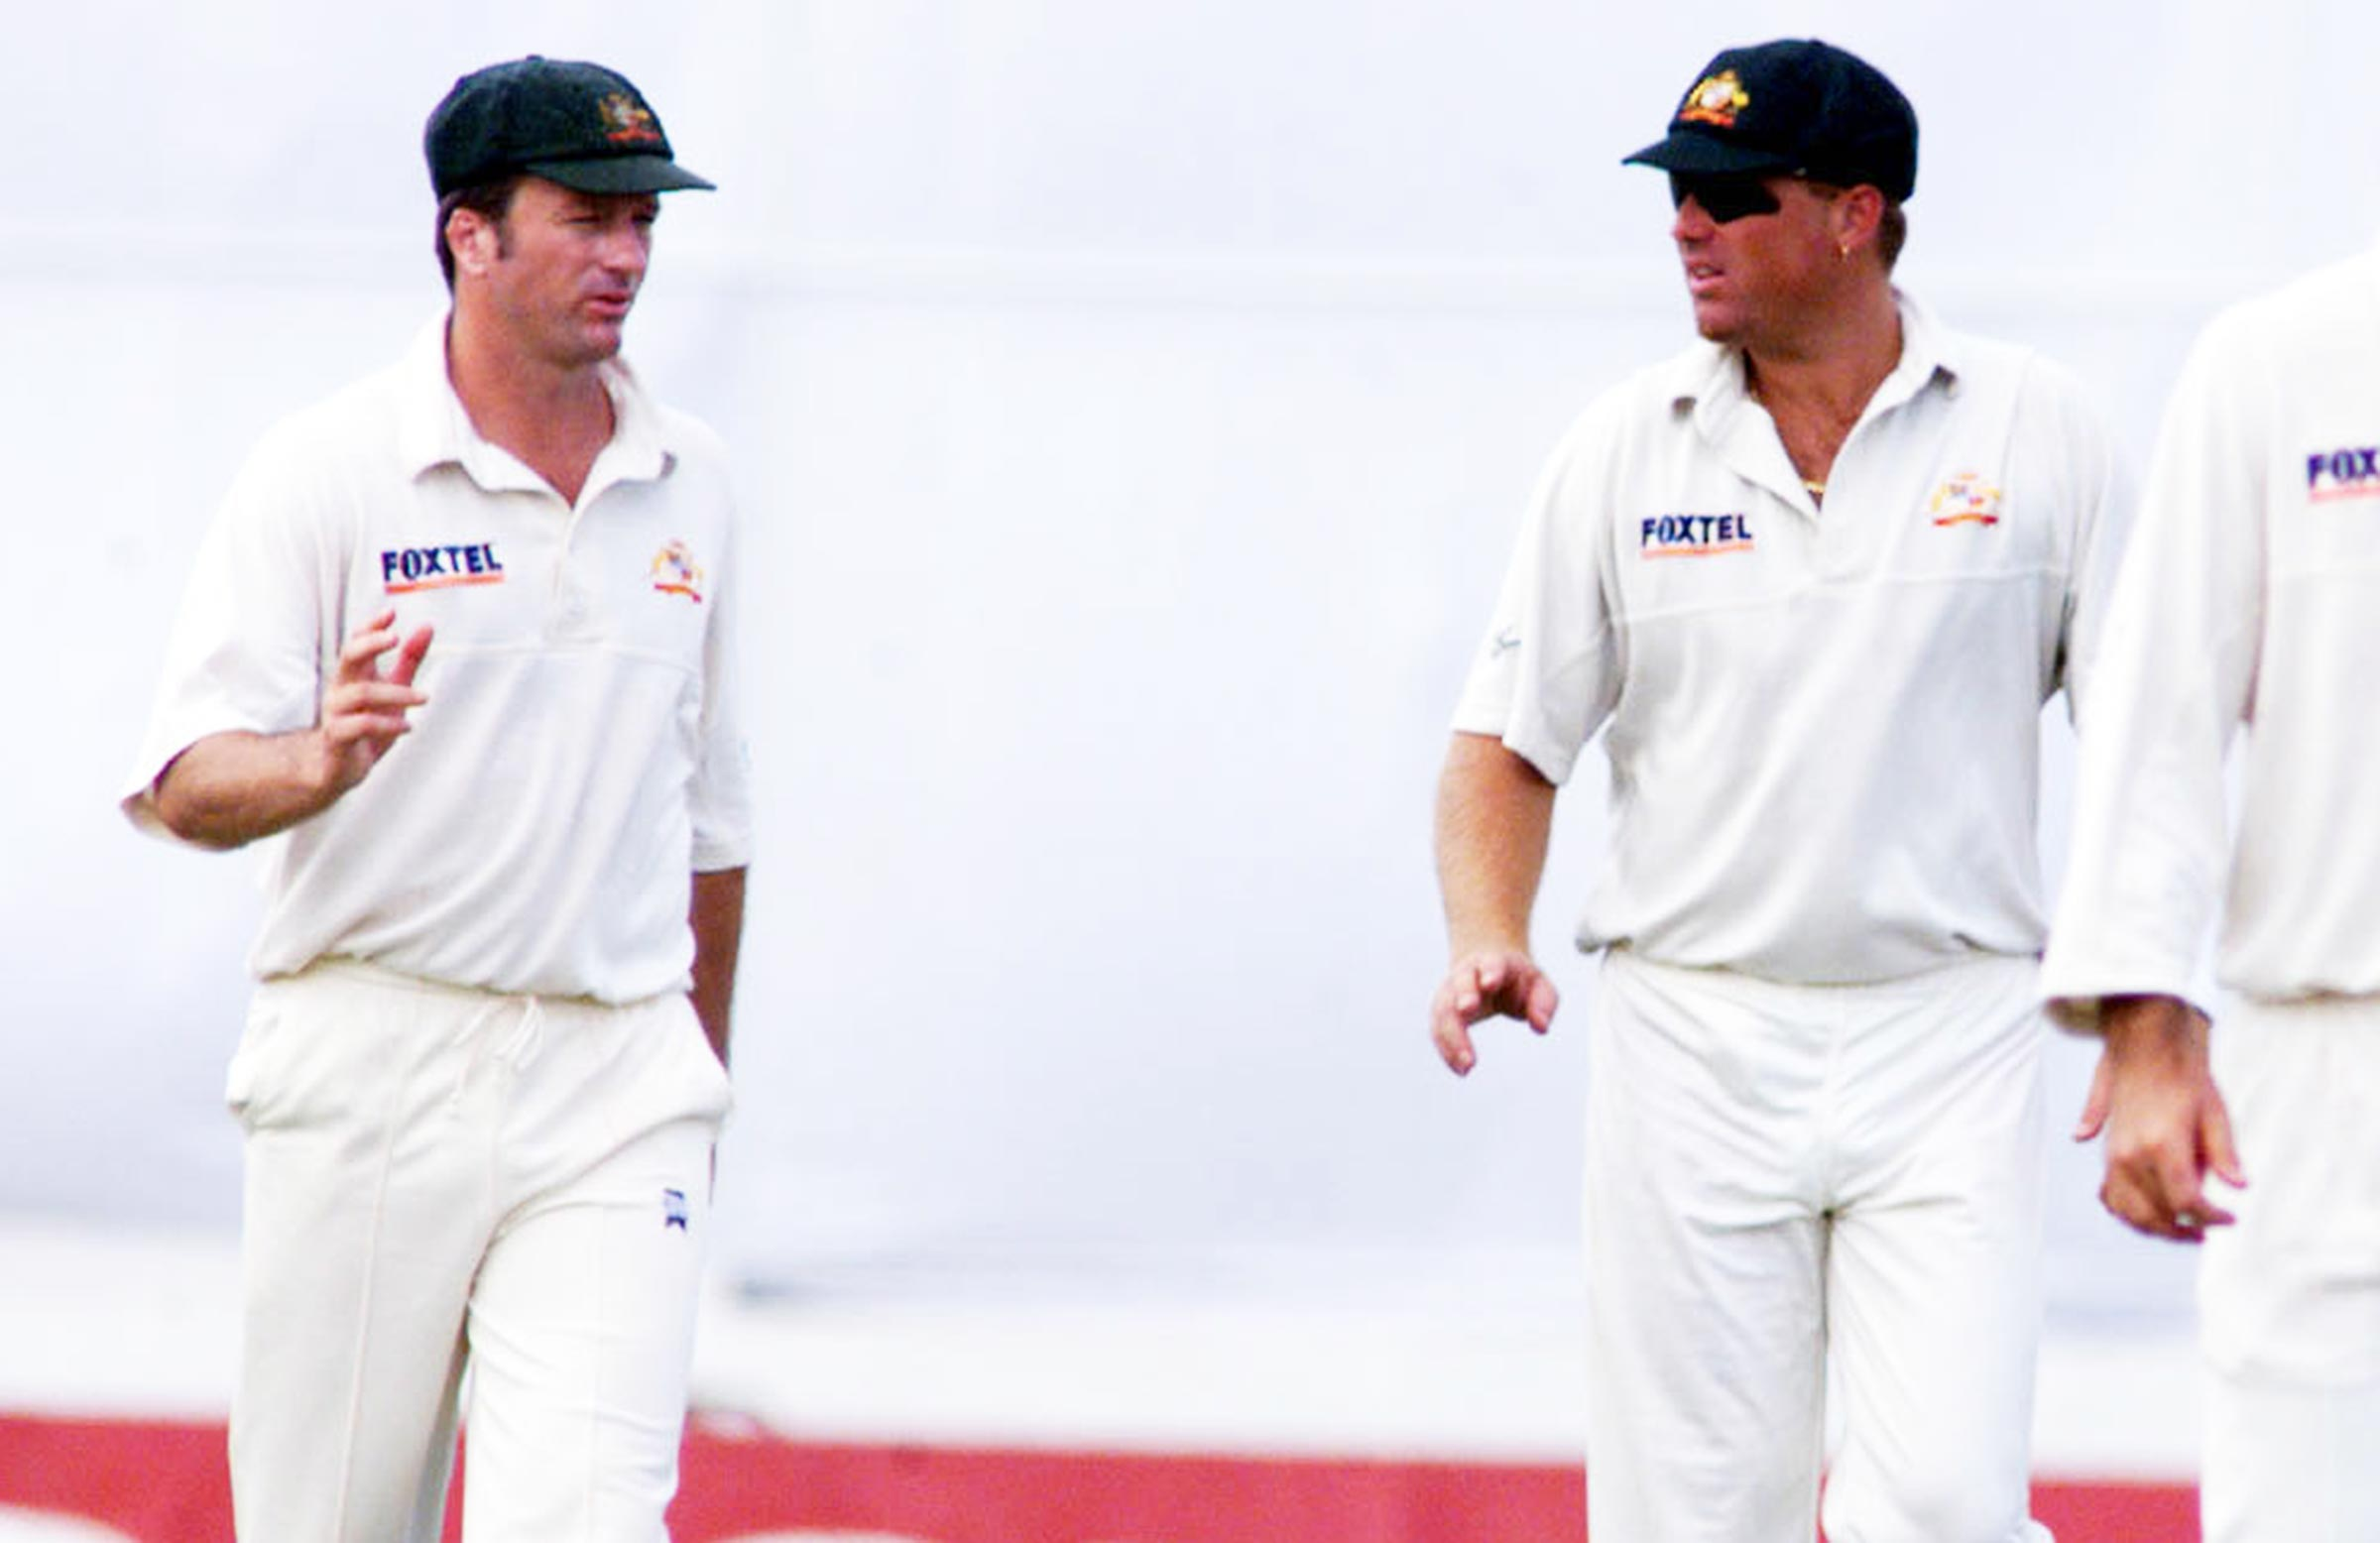 Steve Waugh (left) and Warne during a Test in 1999 // Getty